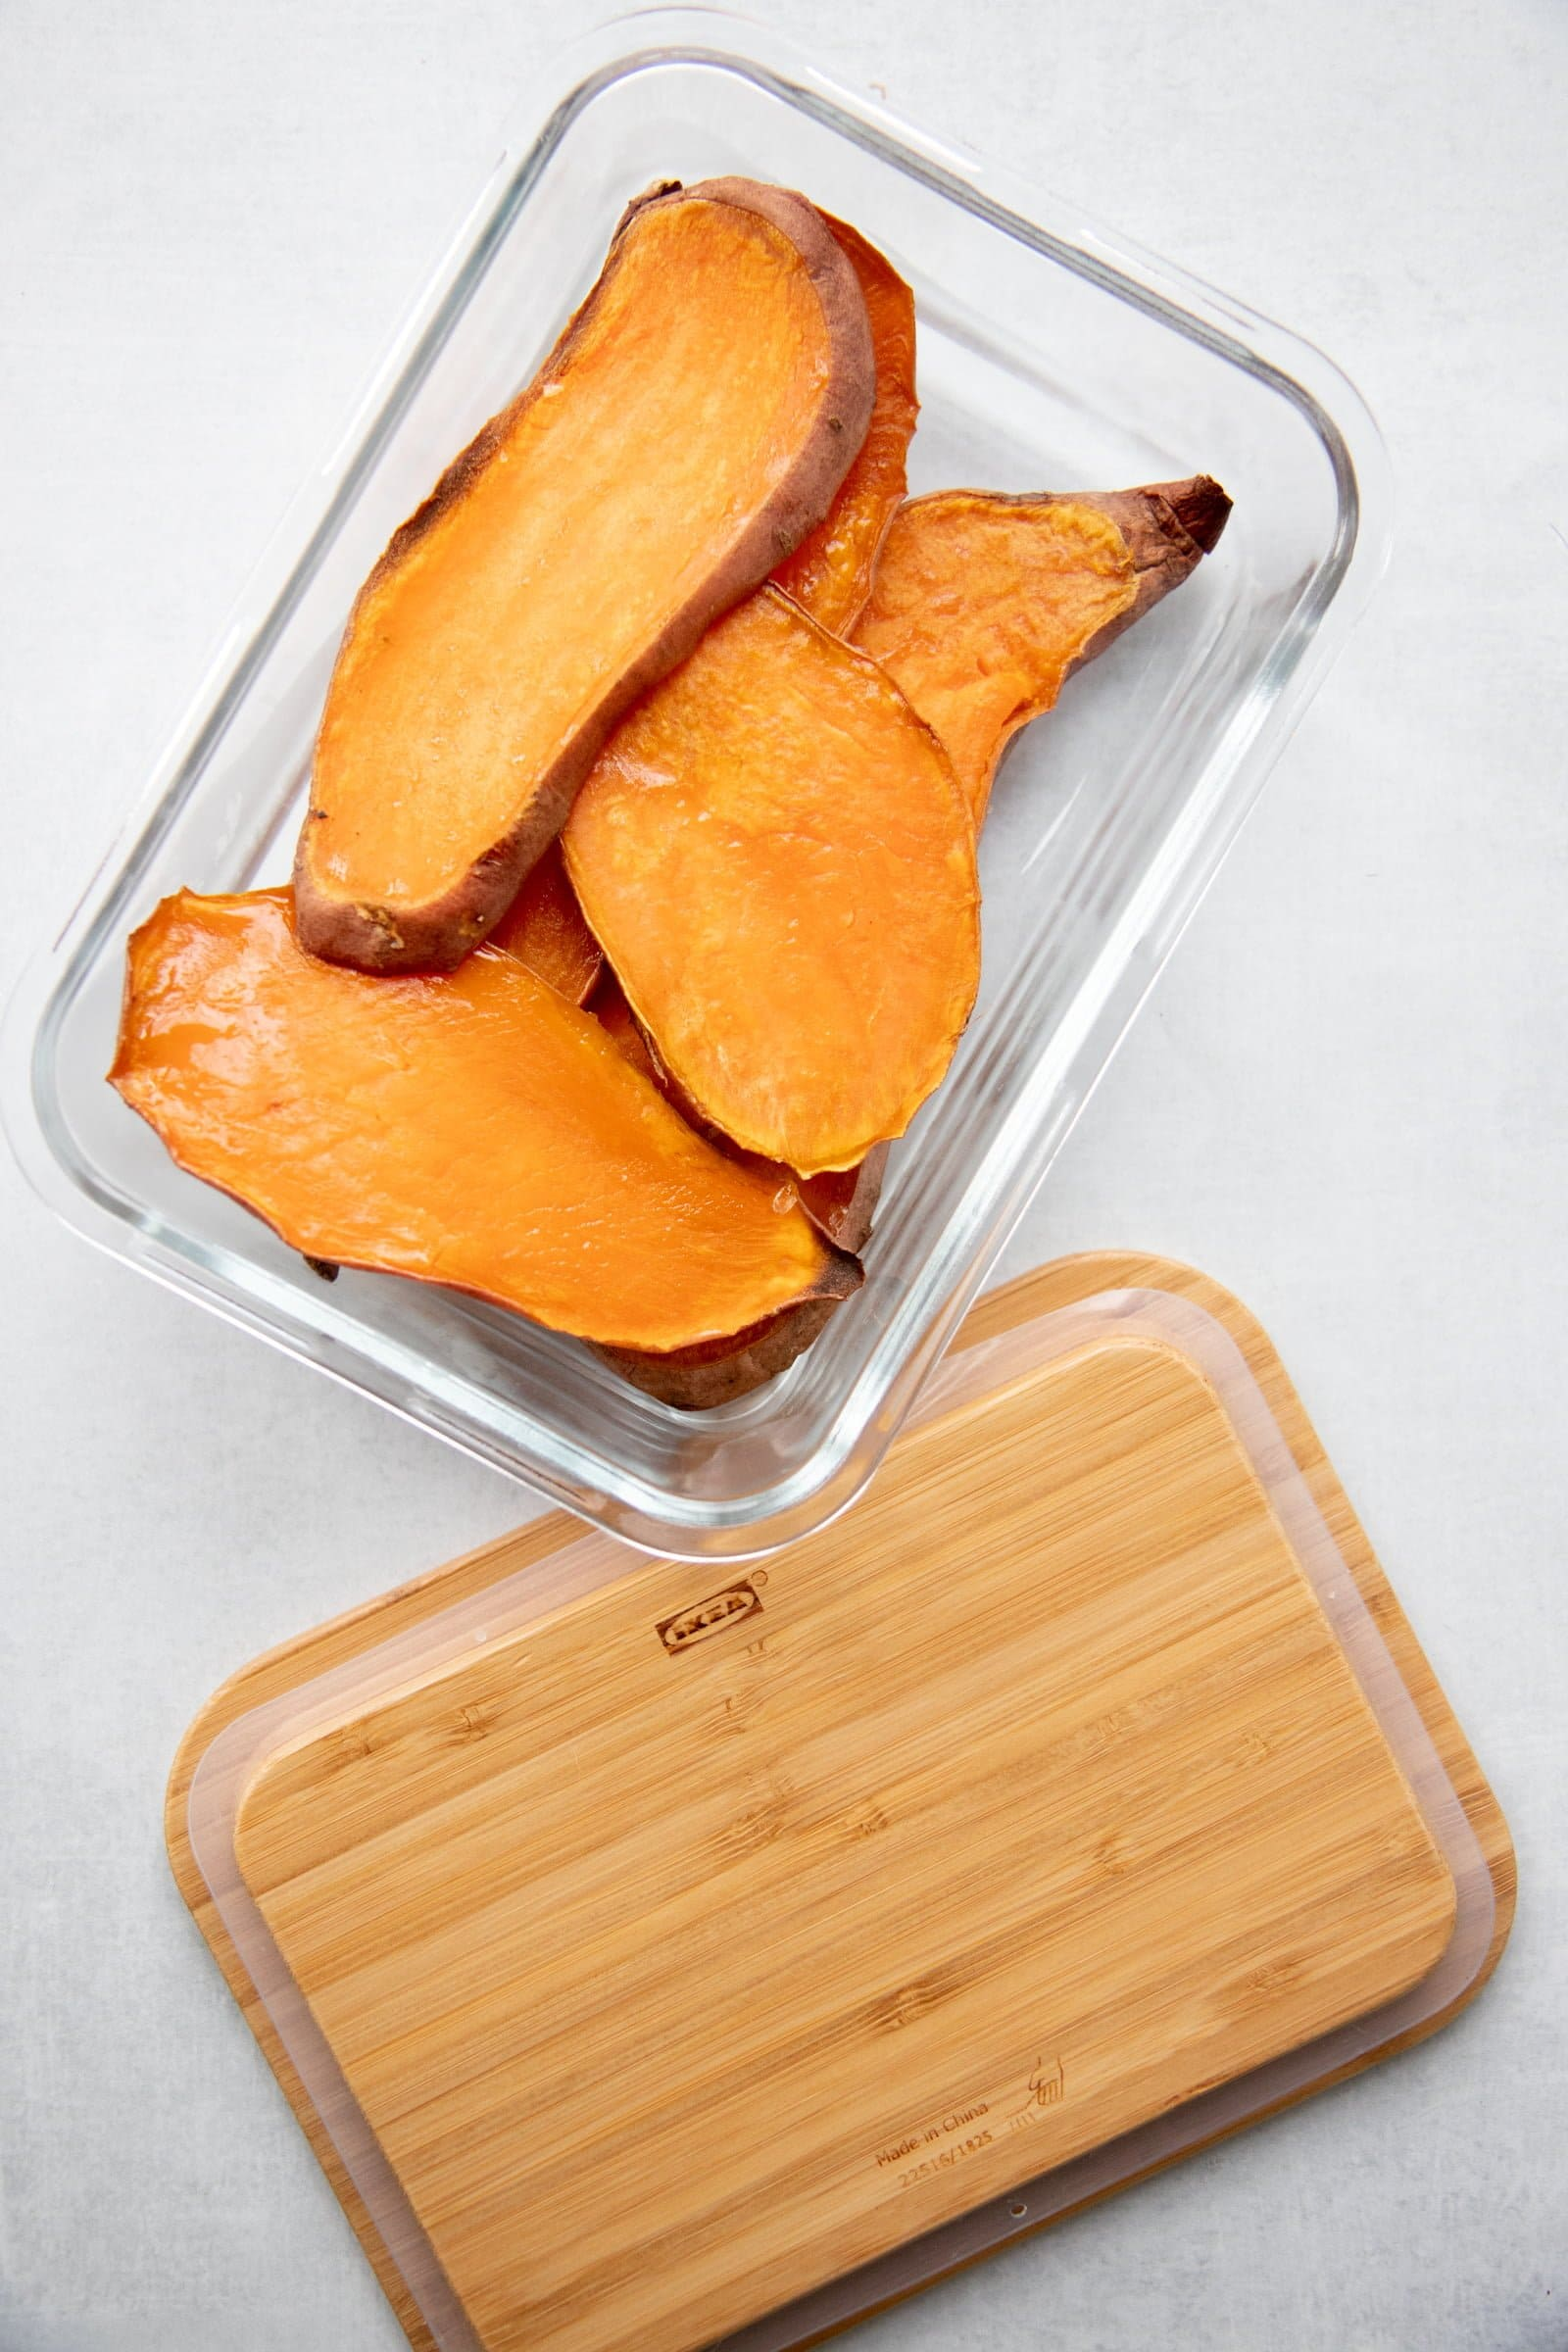 Sweet potato planks in a glass storage container